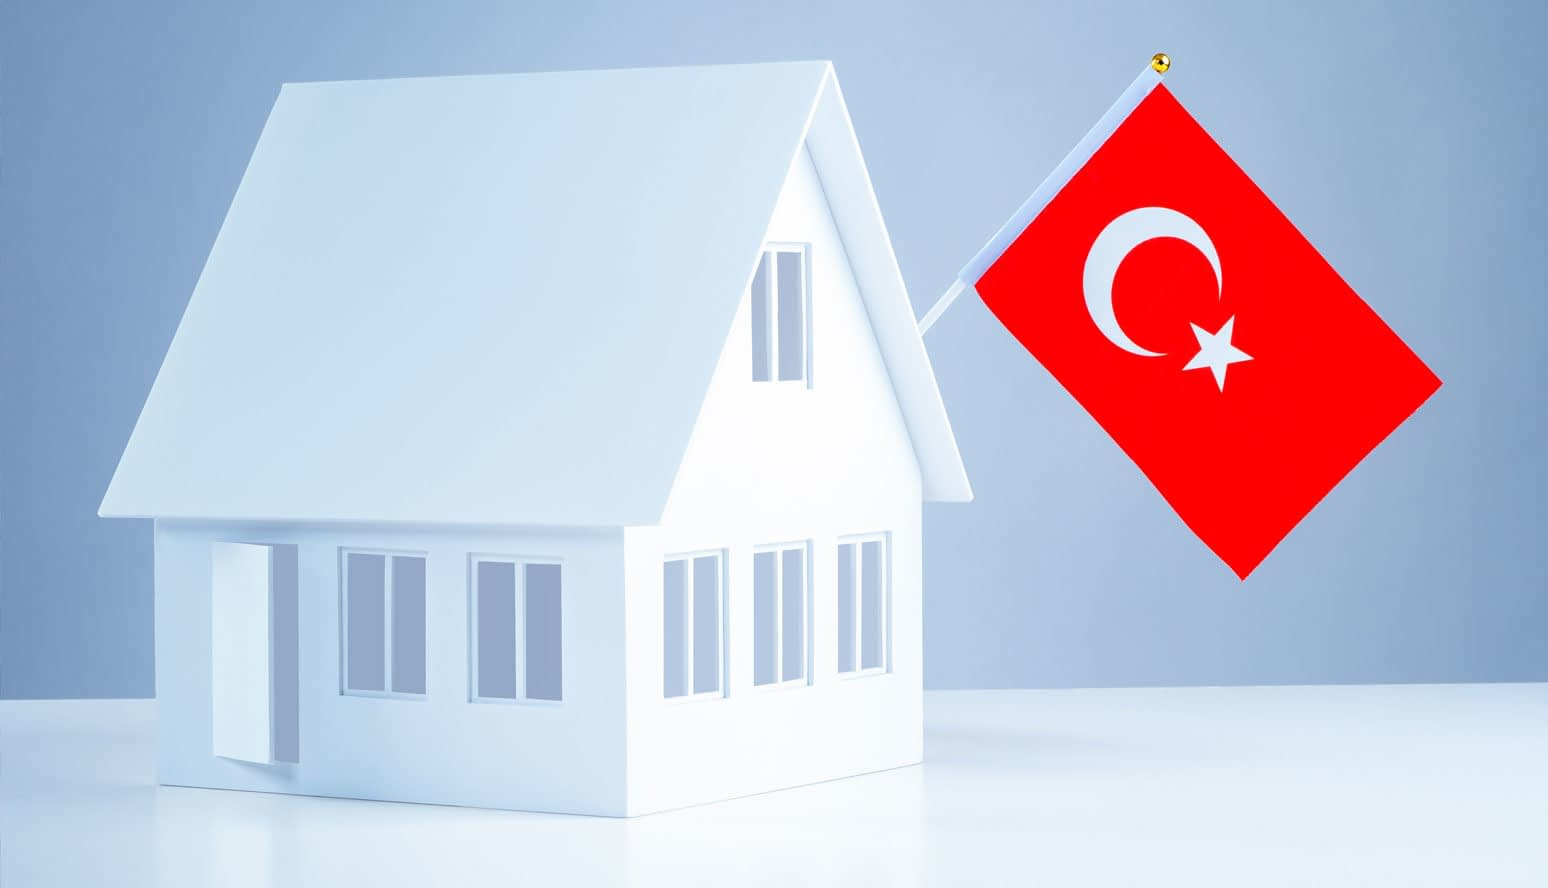 Projects in Turkey